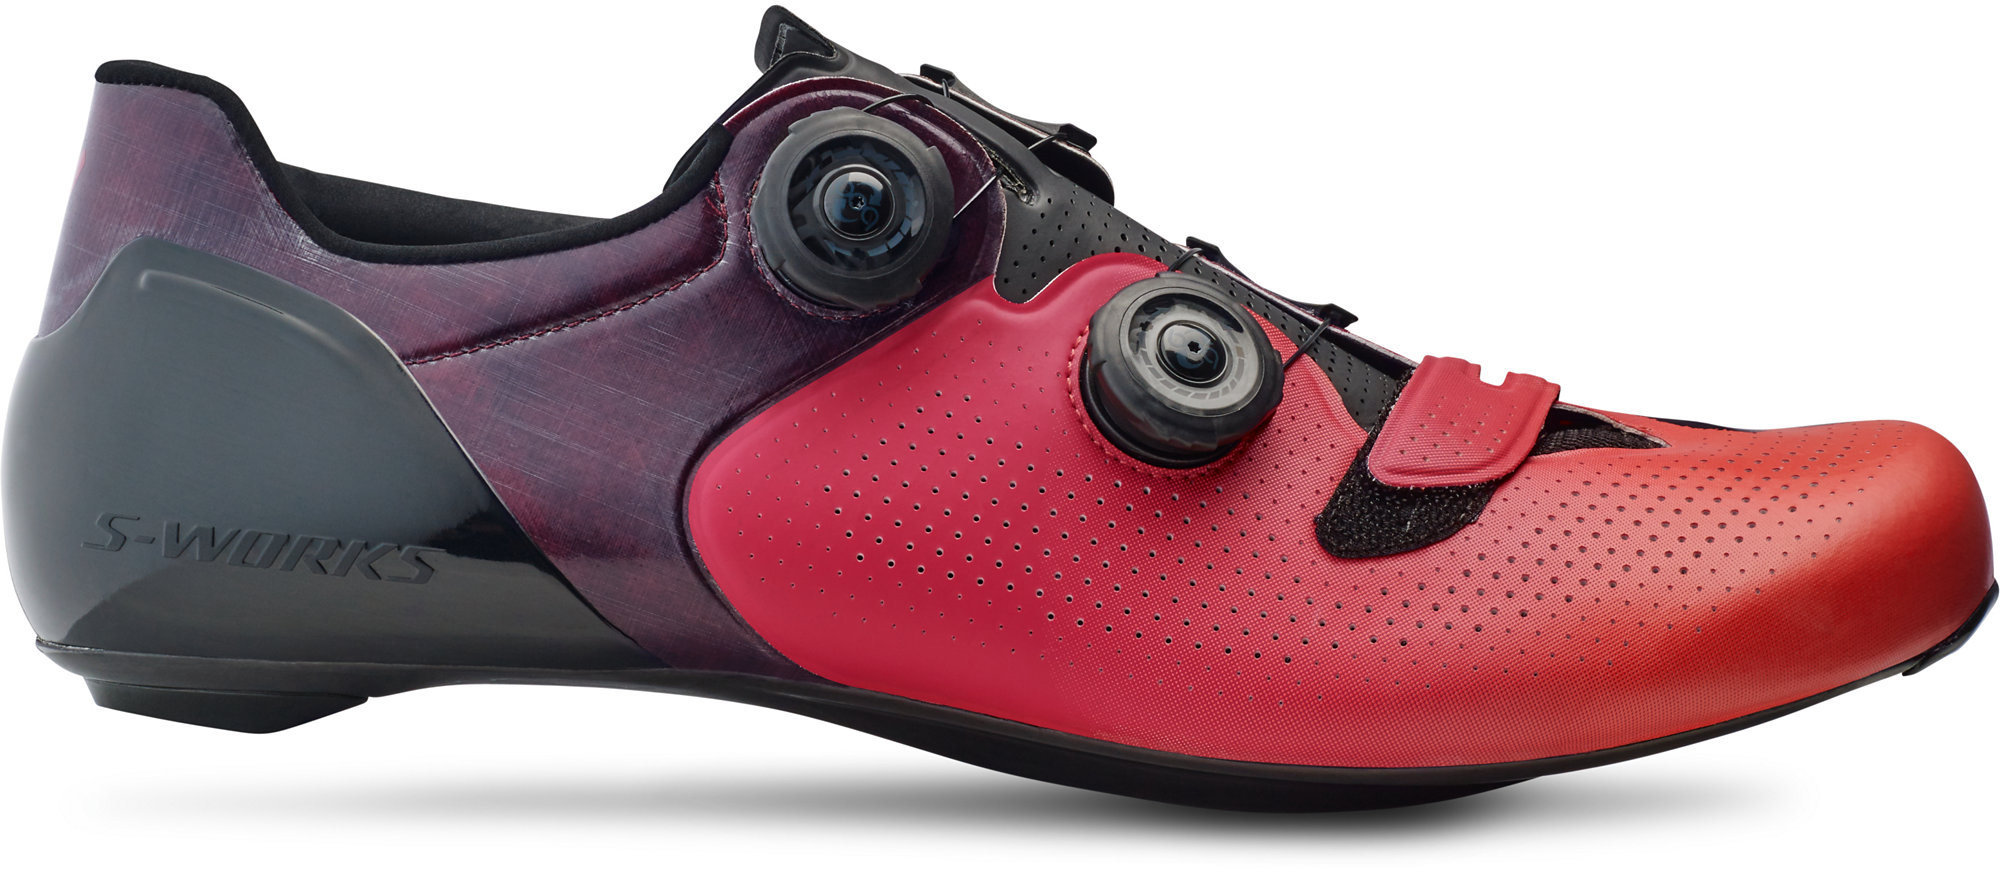 2018 specialized s works 6 road shoes specialized. Black Bedroom Furniture Sets. Home Design Ideas